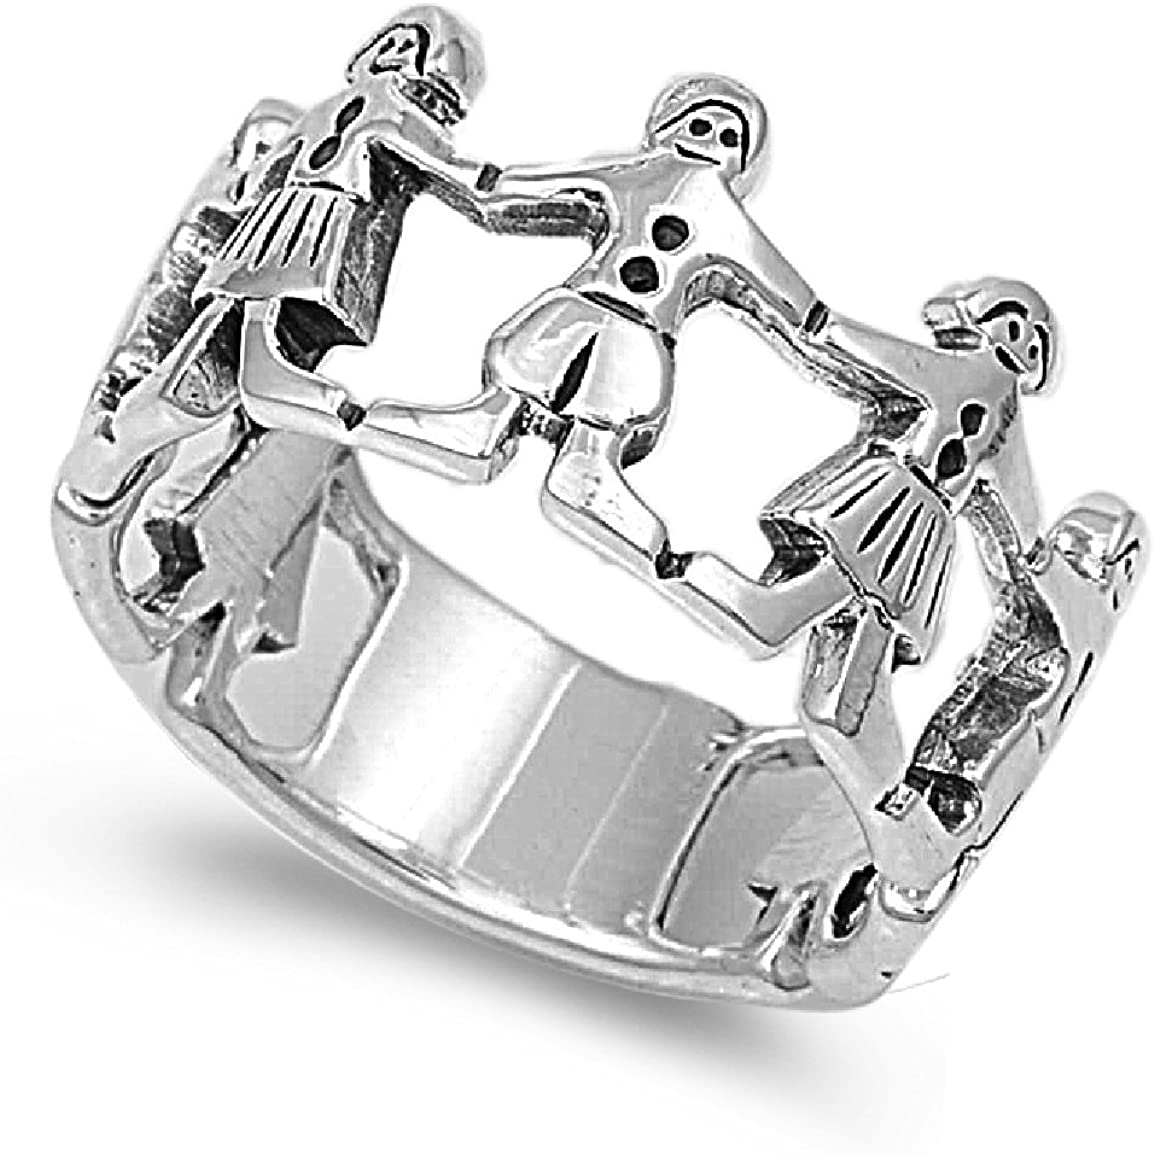 Princess Kylie 925 Sterling Silver Children Holding Hands Ring